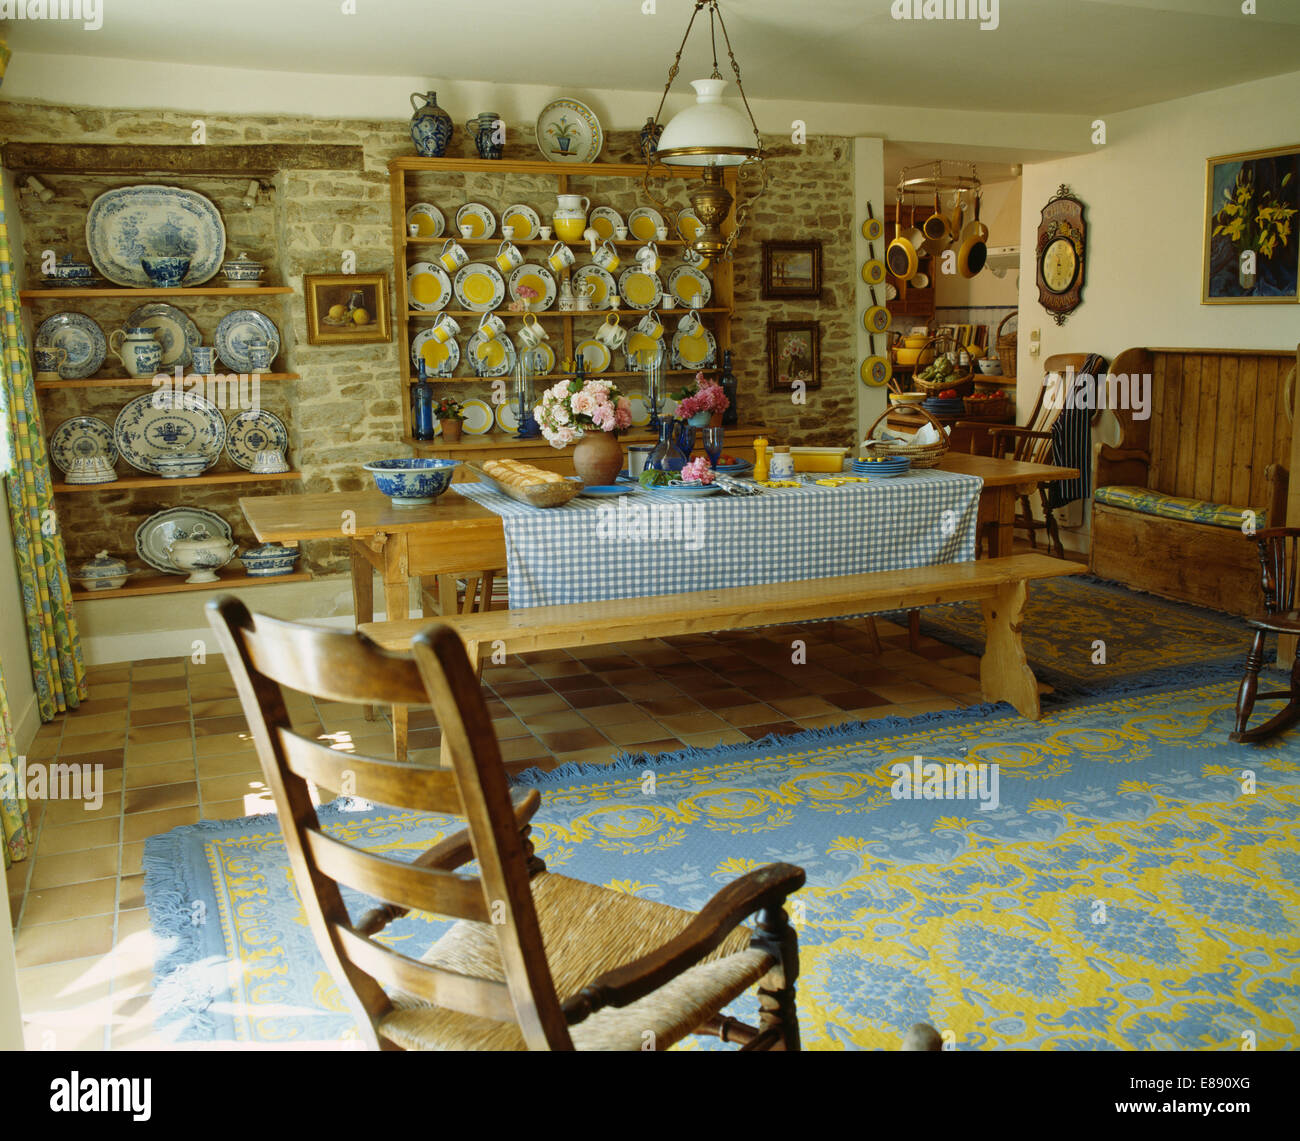 Rocking Chair And Blue+yellow Rug In French Country Dining Room With Bench  At Table With Blue Checked Cloth